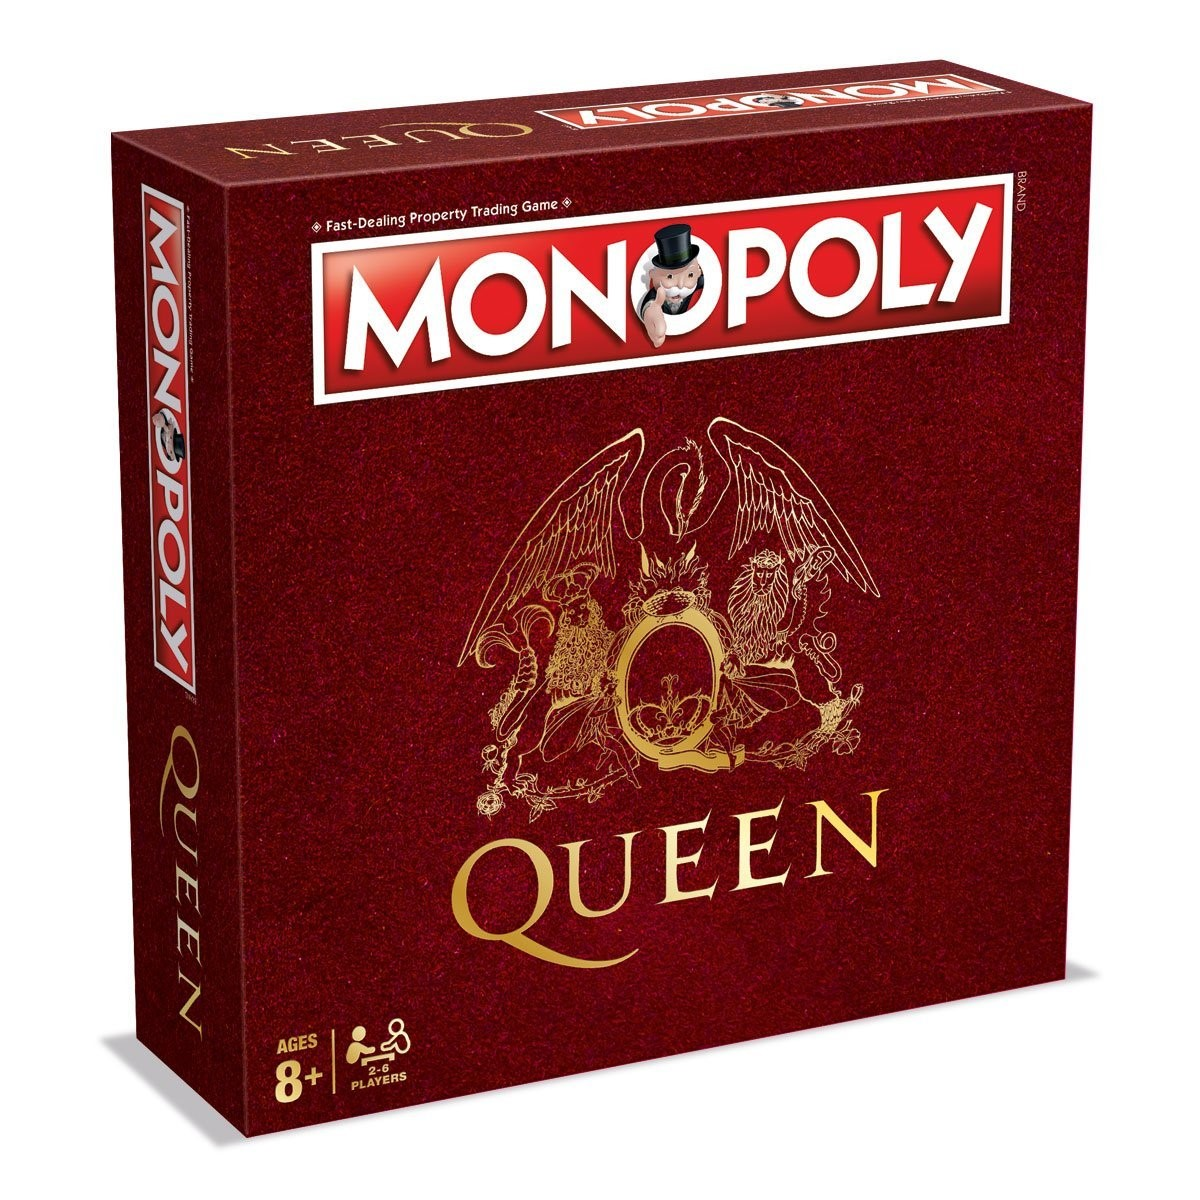 28726 - MONOPOLY QUEEN EDITION, UK VERSION Europe